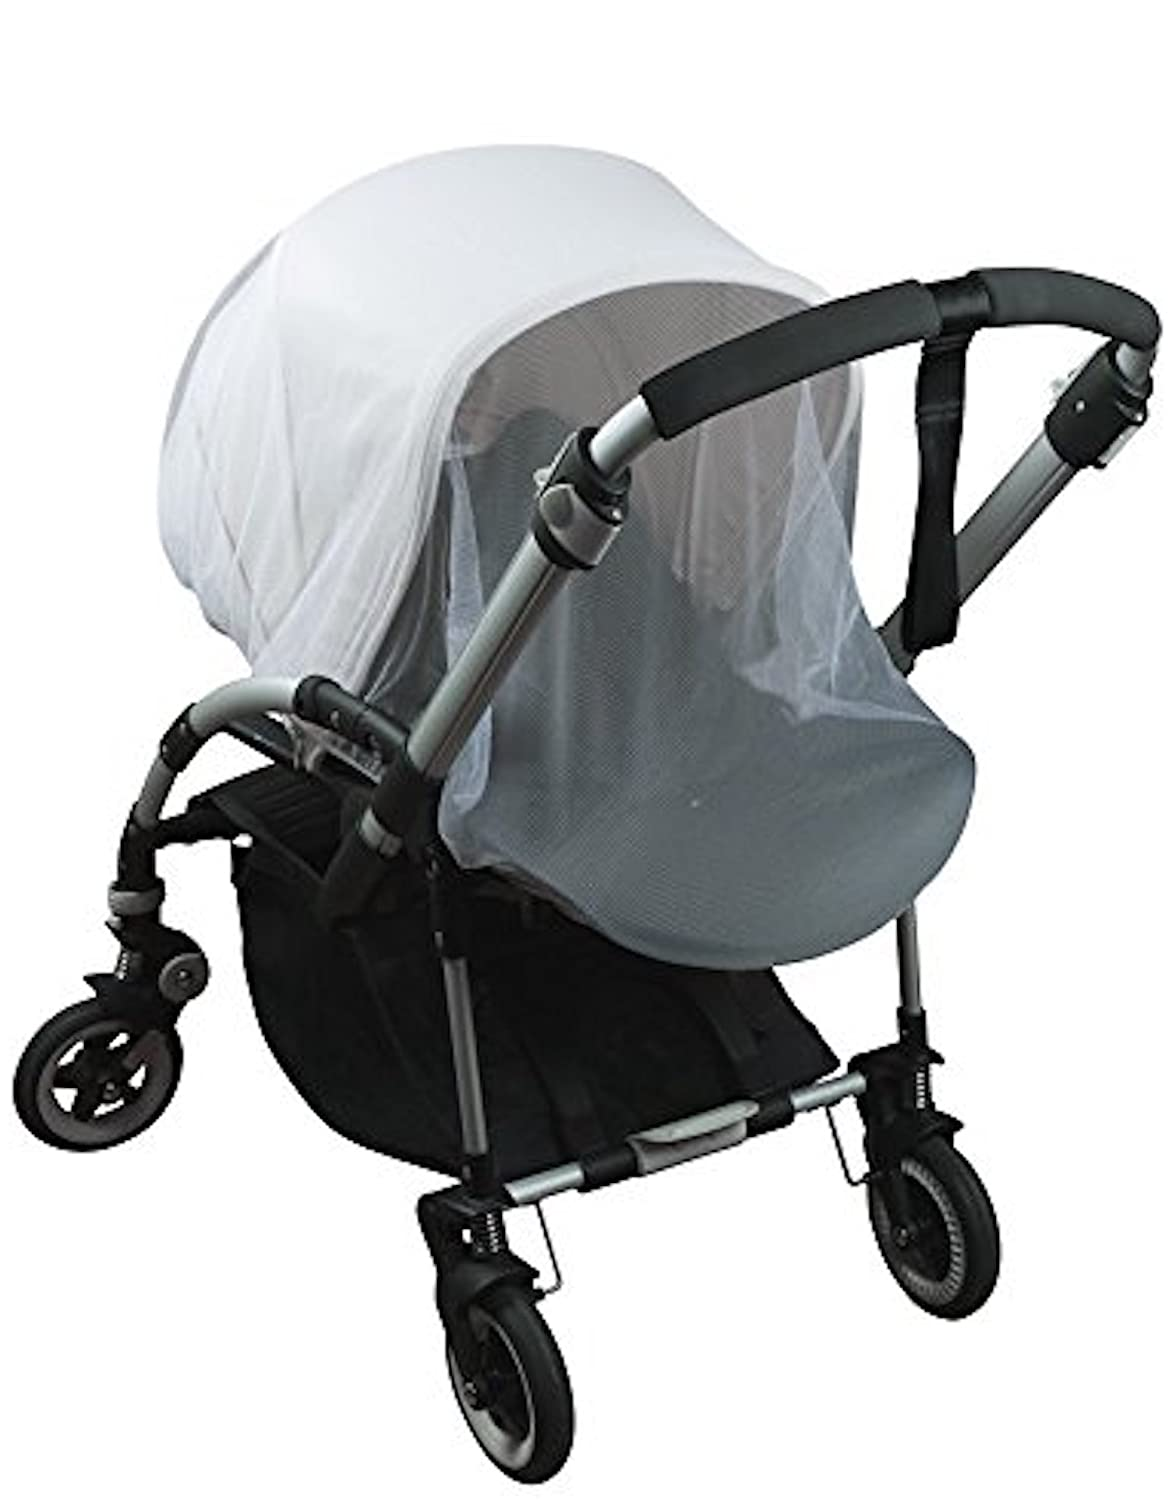 KIDLUF Mosquito And Bug Net For Baby Strollers Bassinets Cradles Car Seats